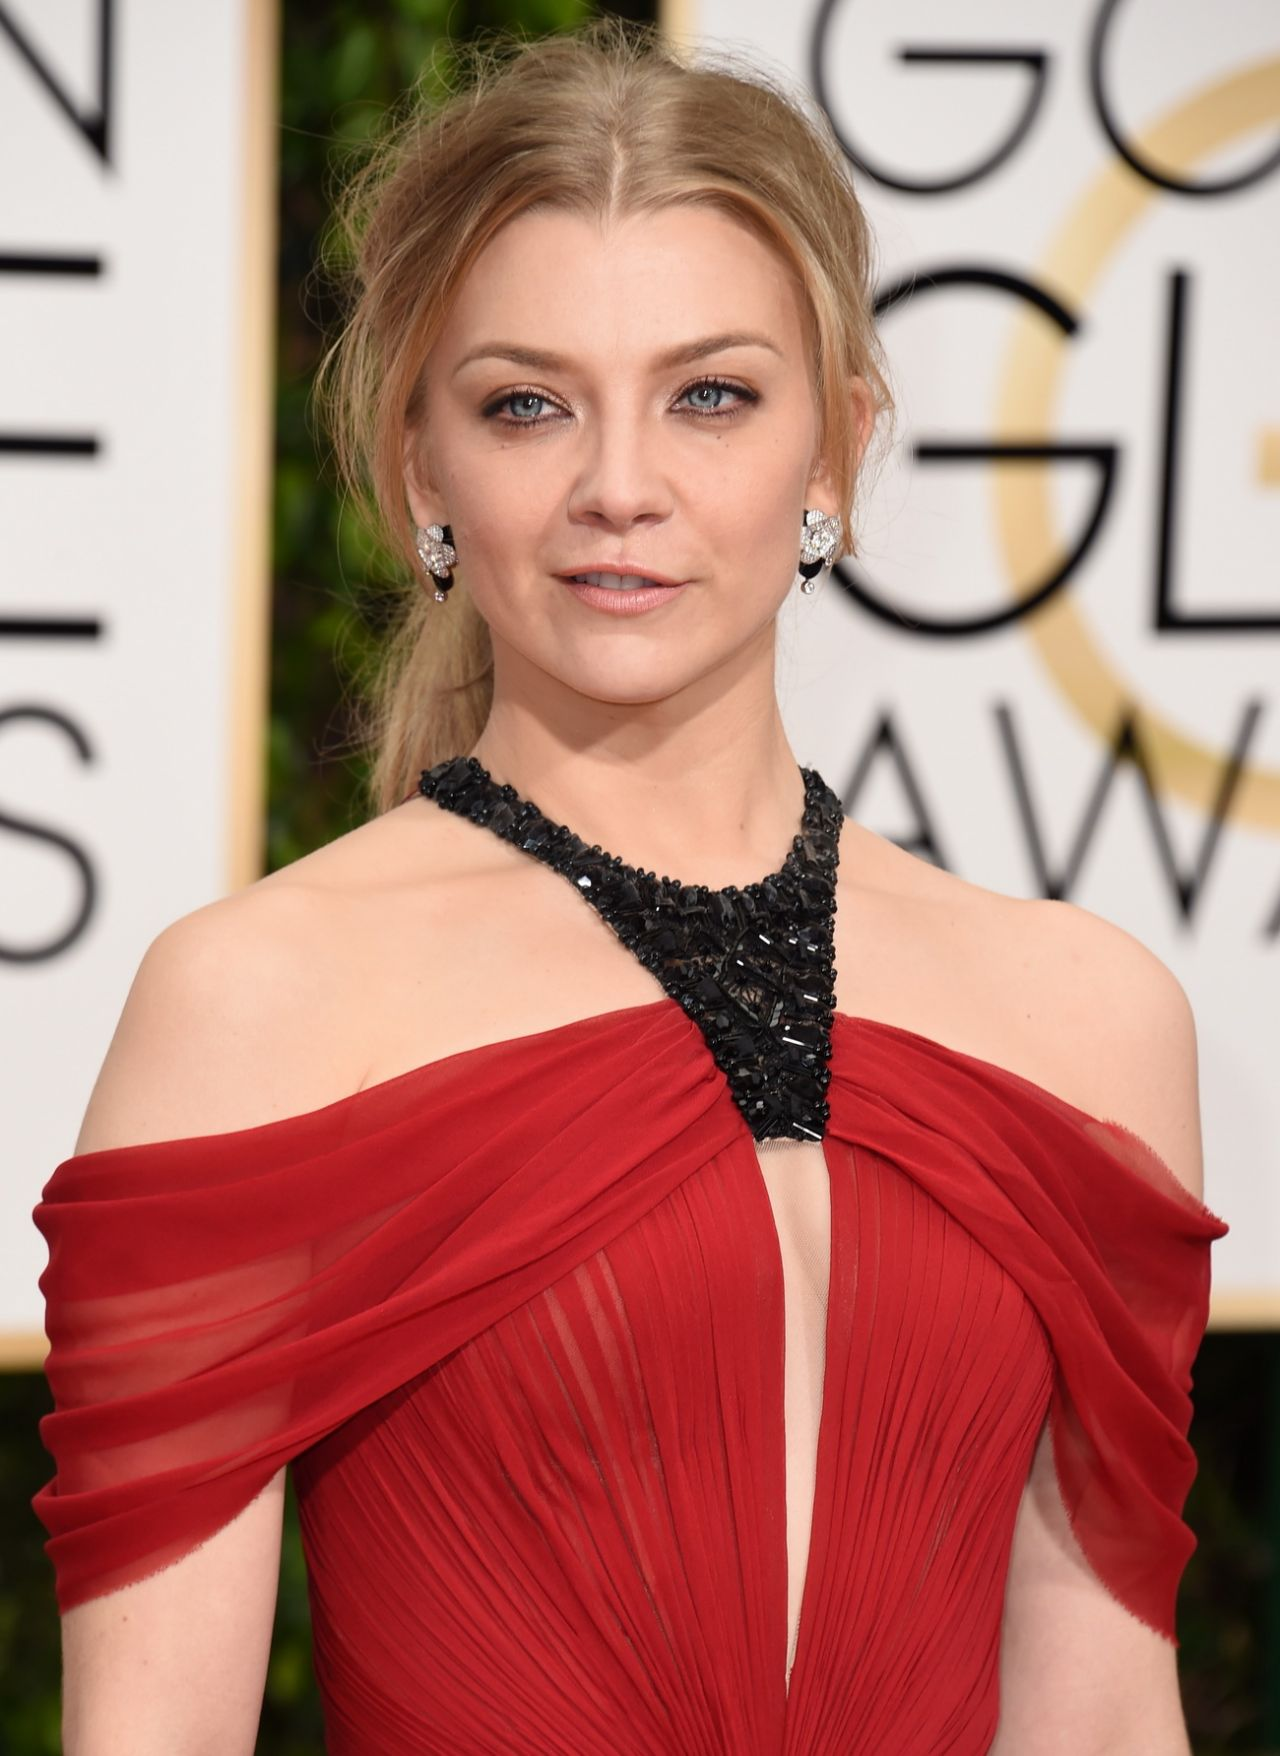 natalie-dormer-2016-golden-globe-awards-in-beverly-hills-6